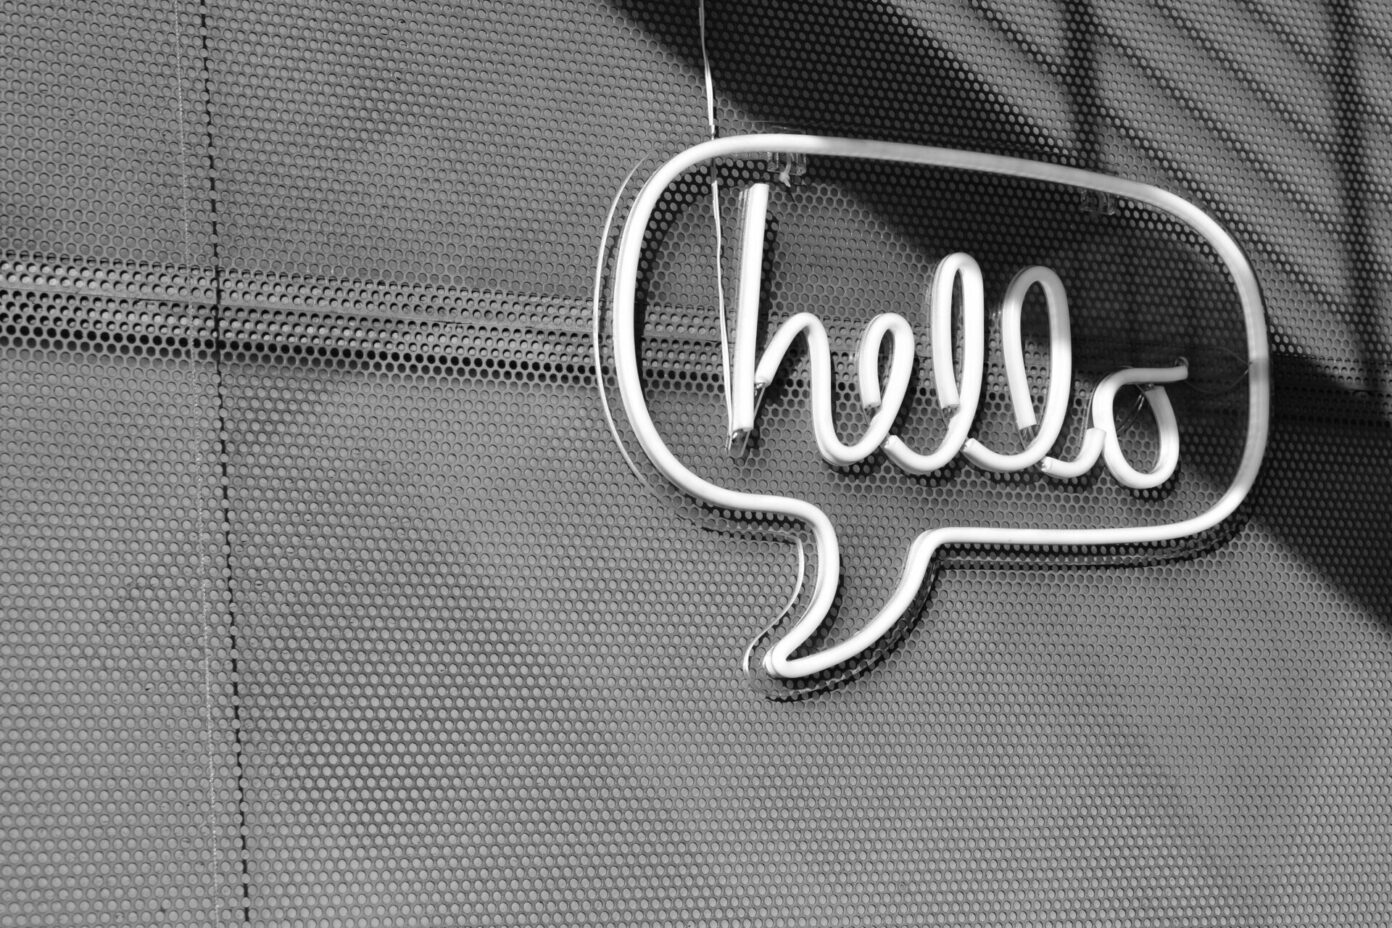 say hello to social media advertising in Manchester